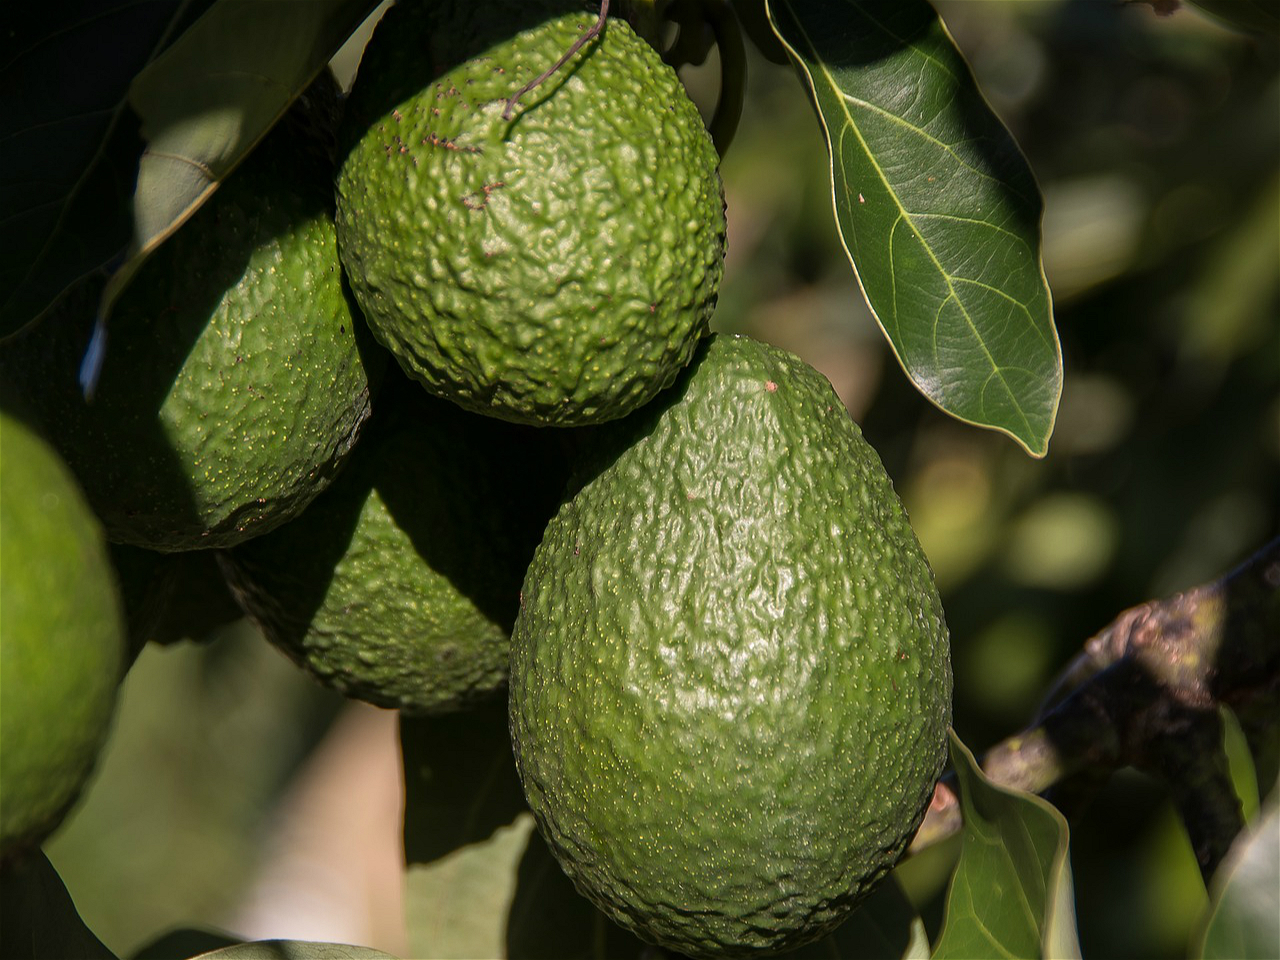 China's taste for avocado linked to drought in Latin America | China